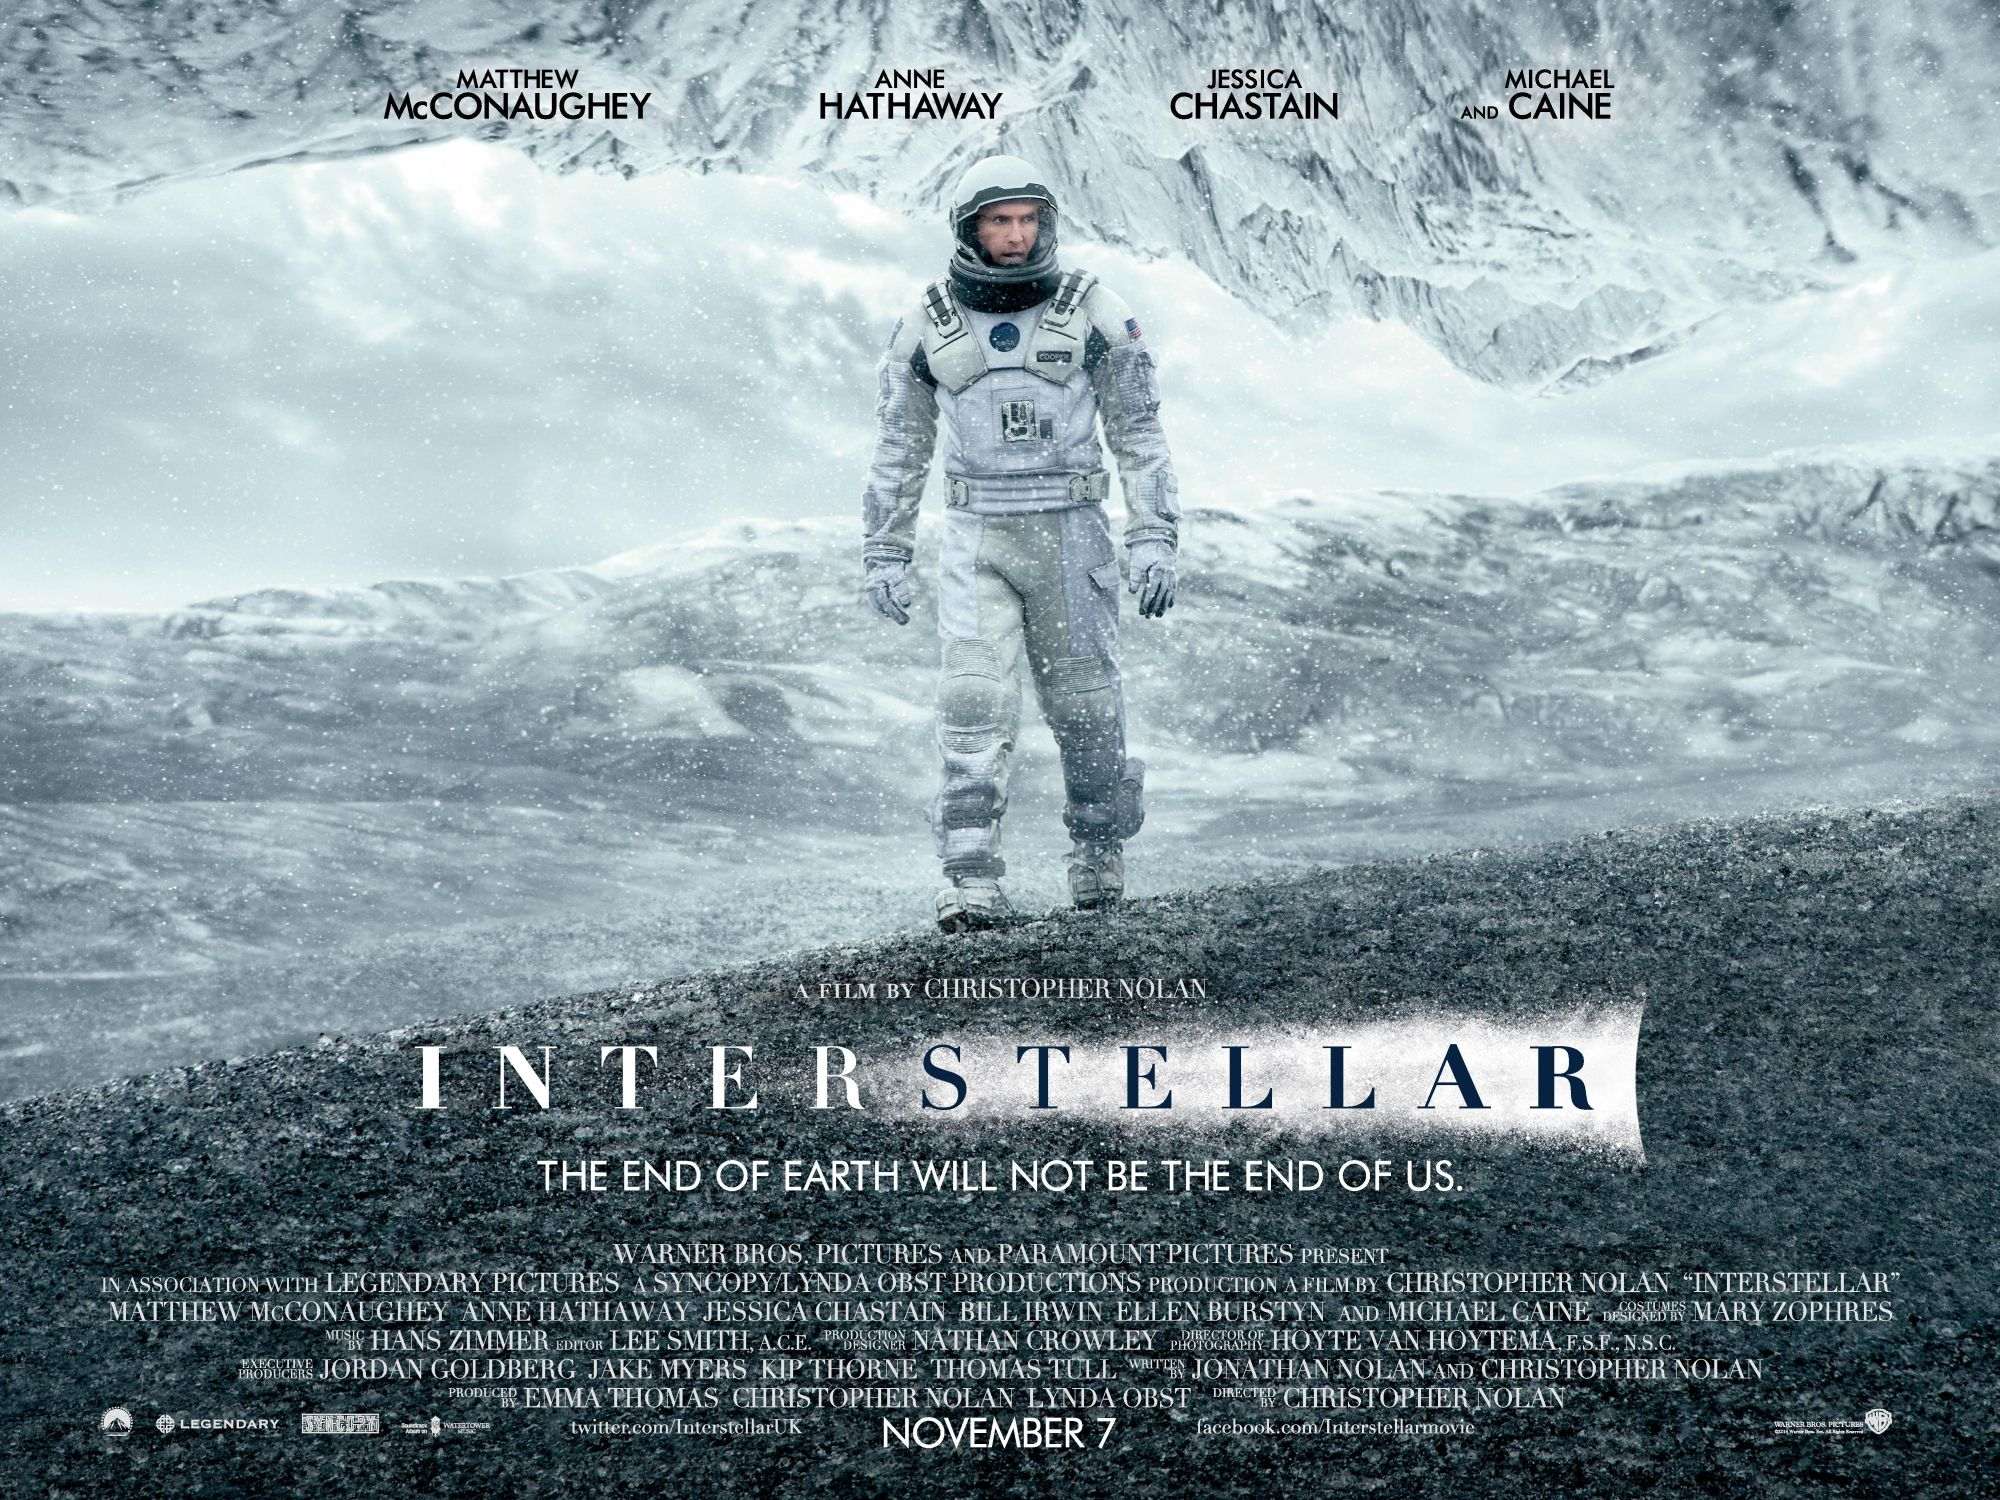 interstellar movie poster from IMDB